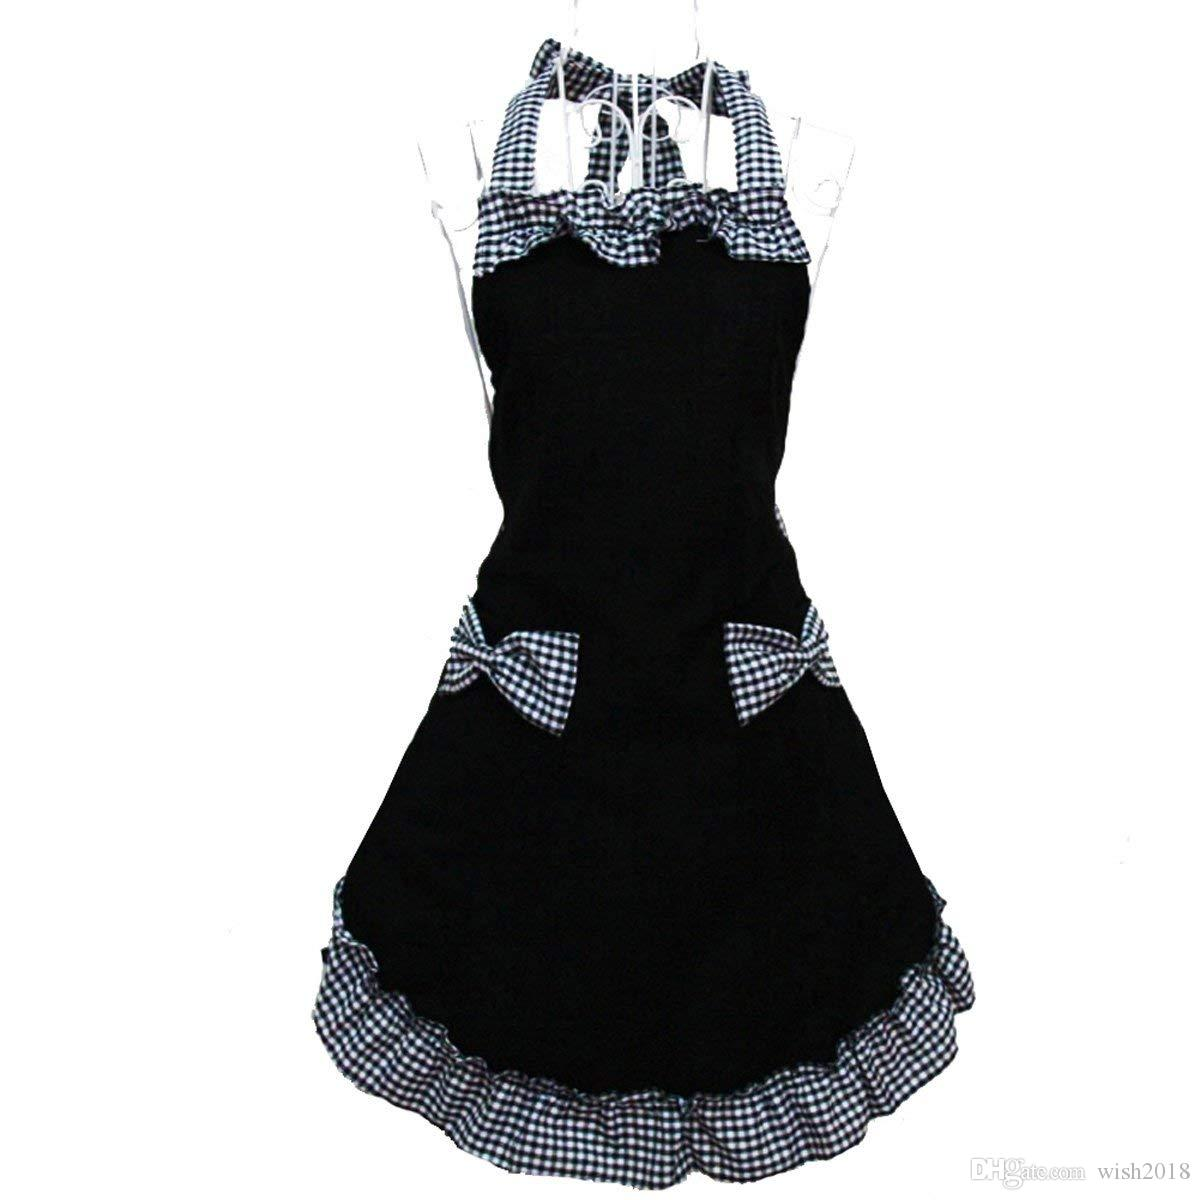 Cute Retro Lovely Vintage Lady's Kitchen Fashion Flirty Women's Aprons with Pockets Black Patterns for Mother's Day Gift